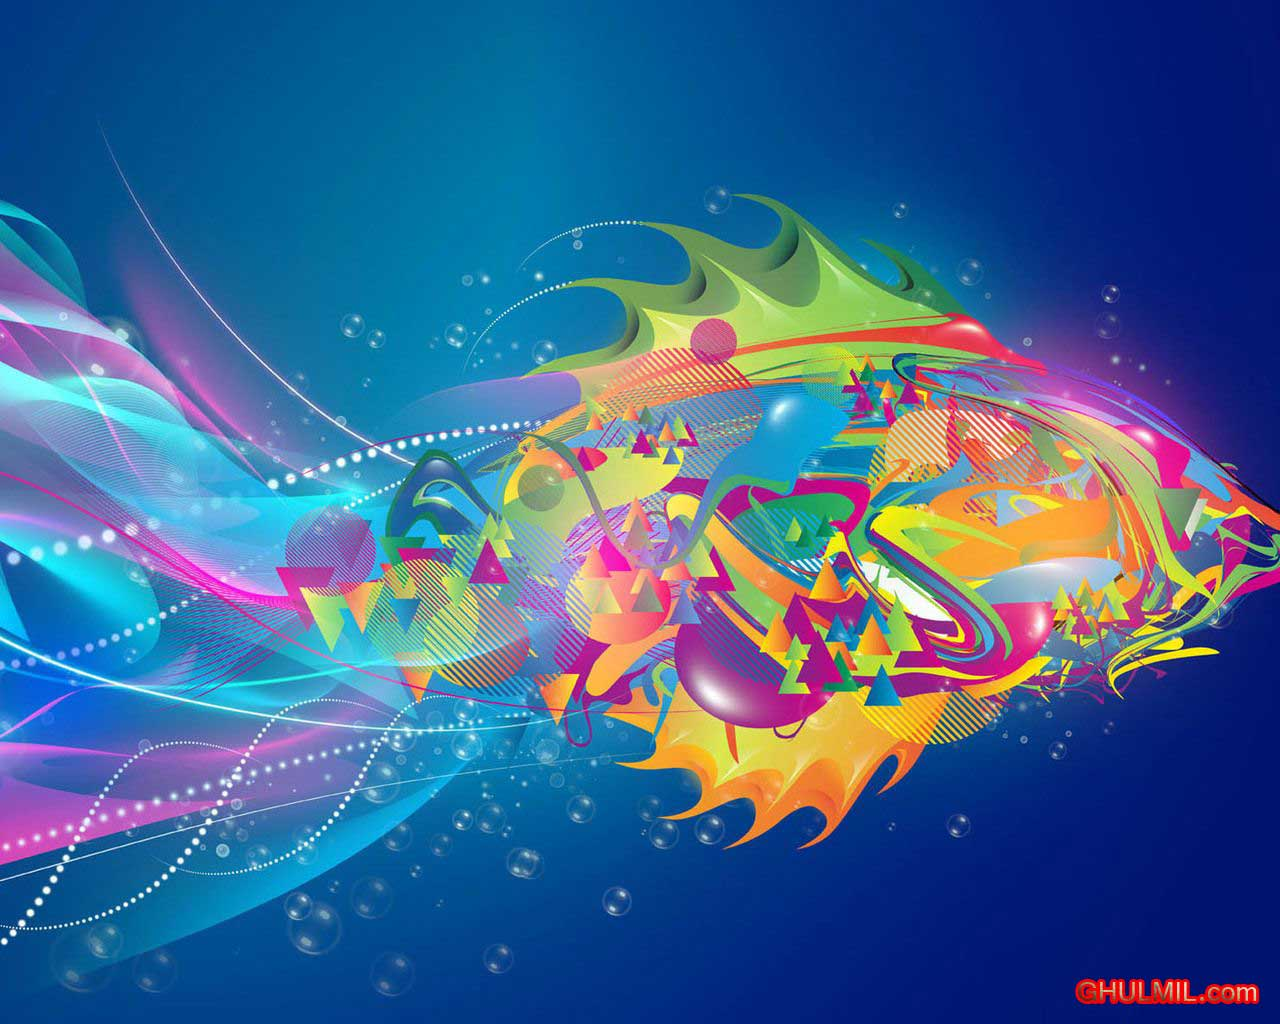 http://2.bp.blogspot.com/-Id7sG76Dw-c/Tpad4ZGRU9I/AAAAAAAAB38/jOtBwTbJhDo/s1600/free-download-colorful-fish-wallpaper.jpg